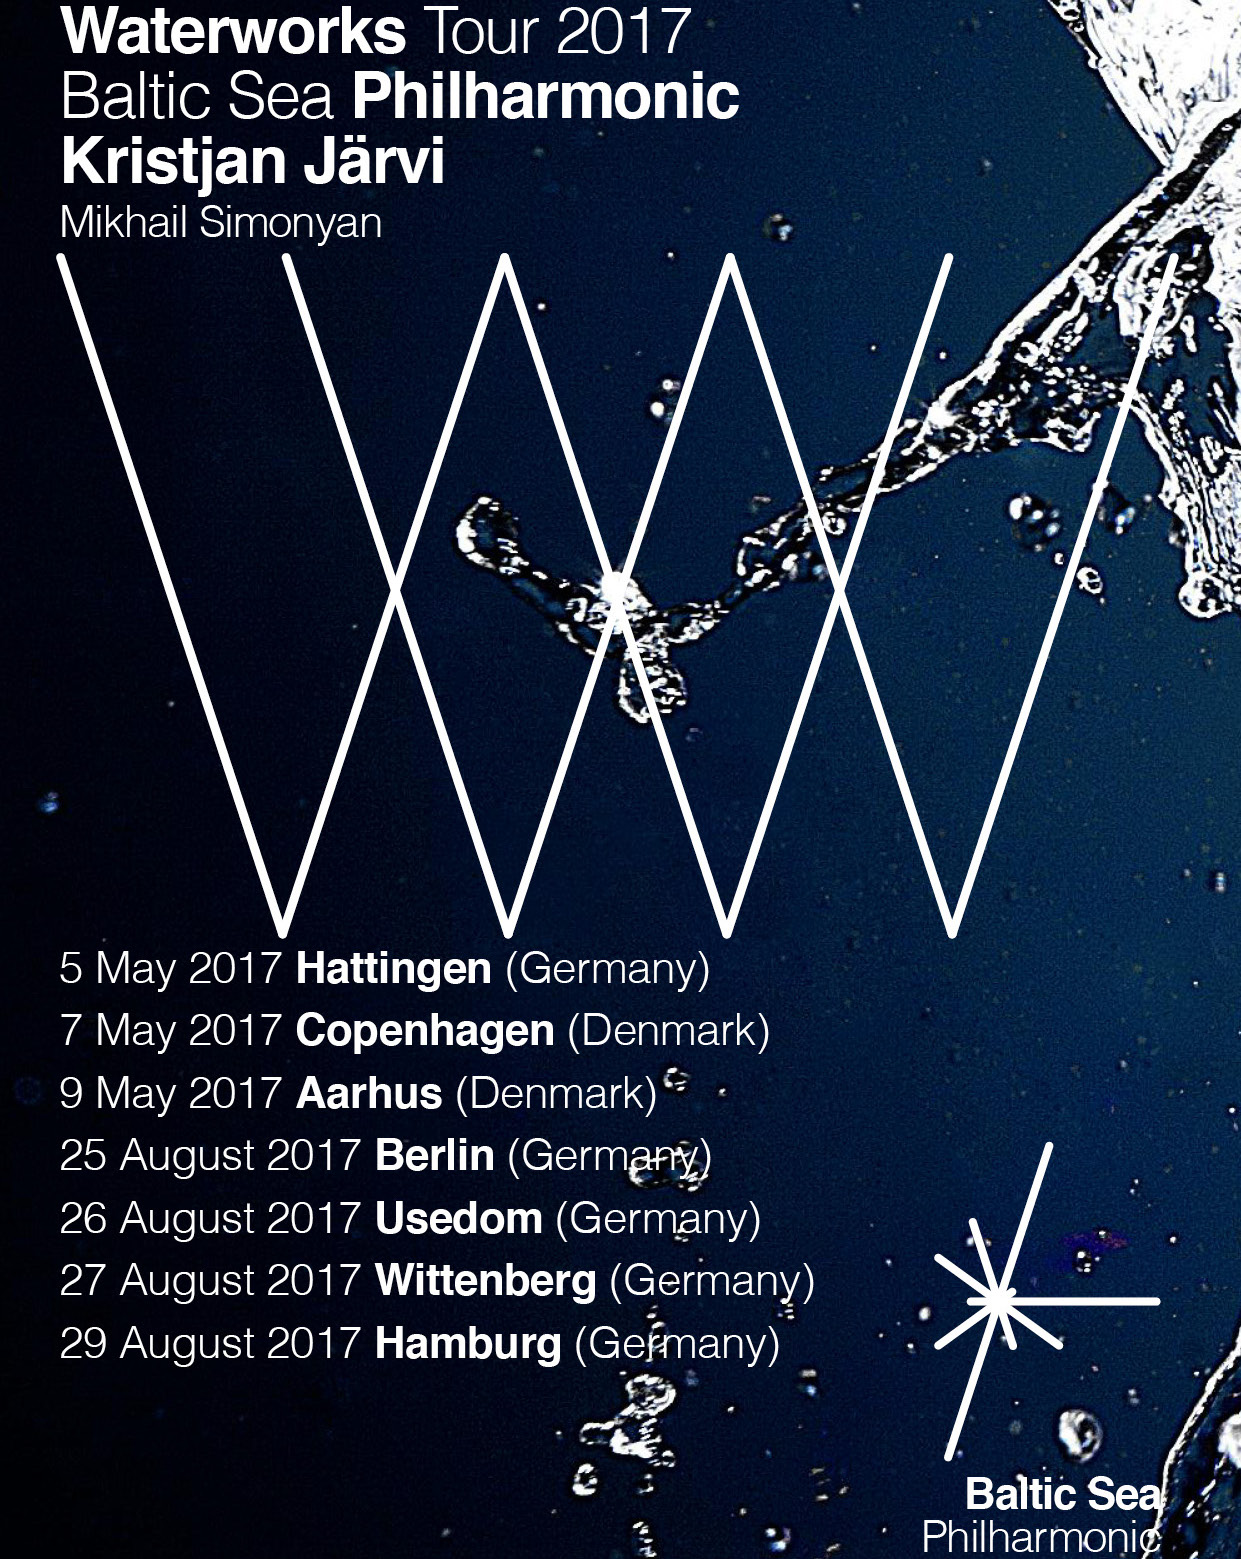 http://blog.baltic-sea-philharmonic.eu/wp-content/uploads/BMEF_Waterworks_Digital-Poster_eng_2017.jpg